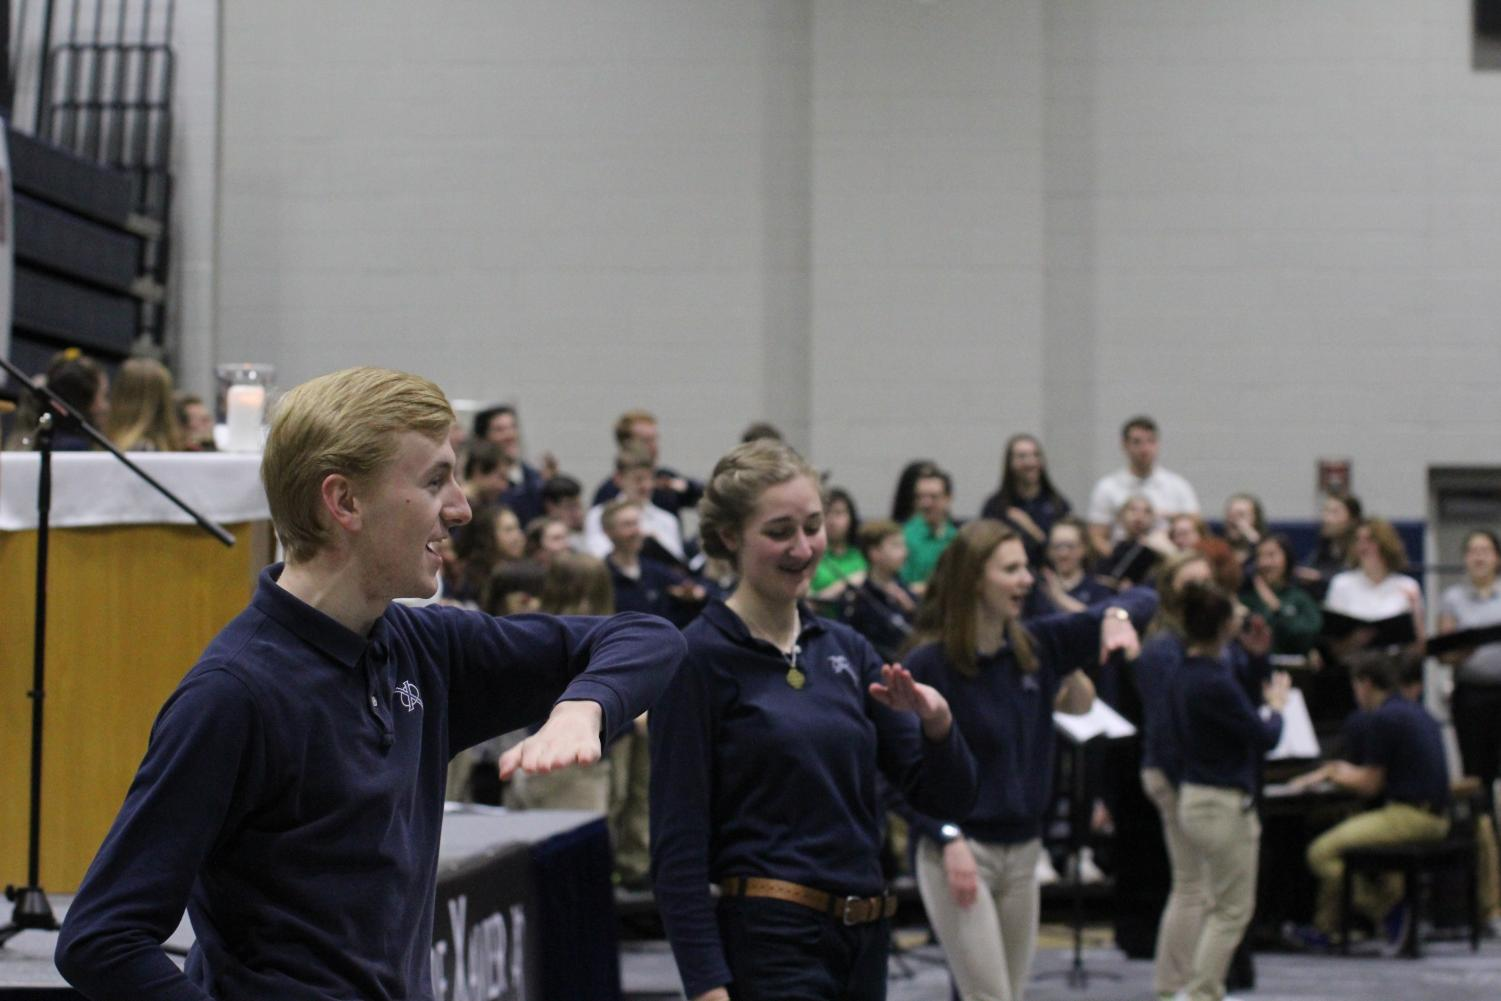 Senior Caleb Burken and junior Chloe Kepros lead middle school students in song at the Catholic Schools Week Mass. Camryn McPherson Photo.